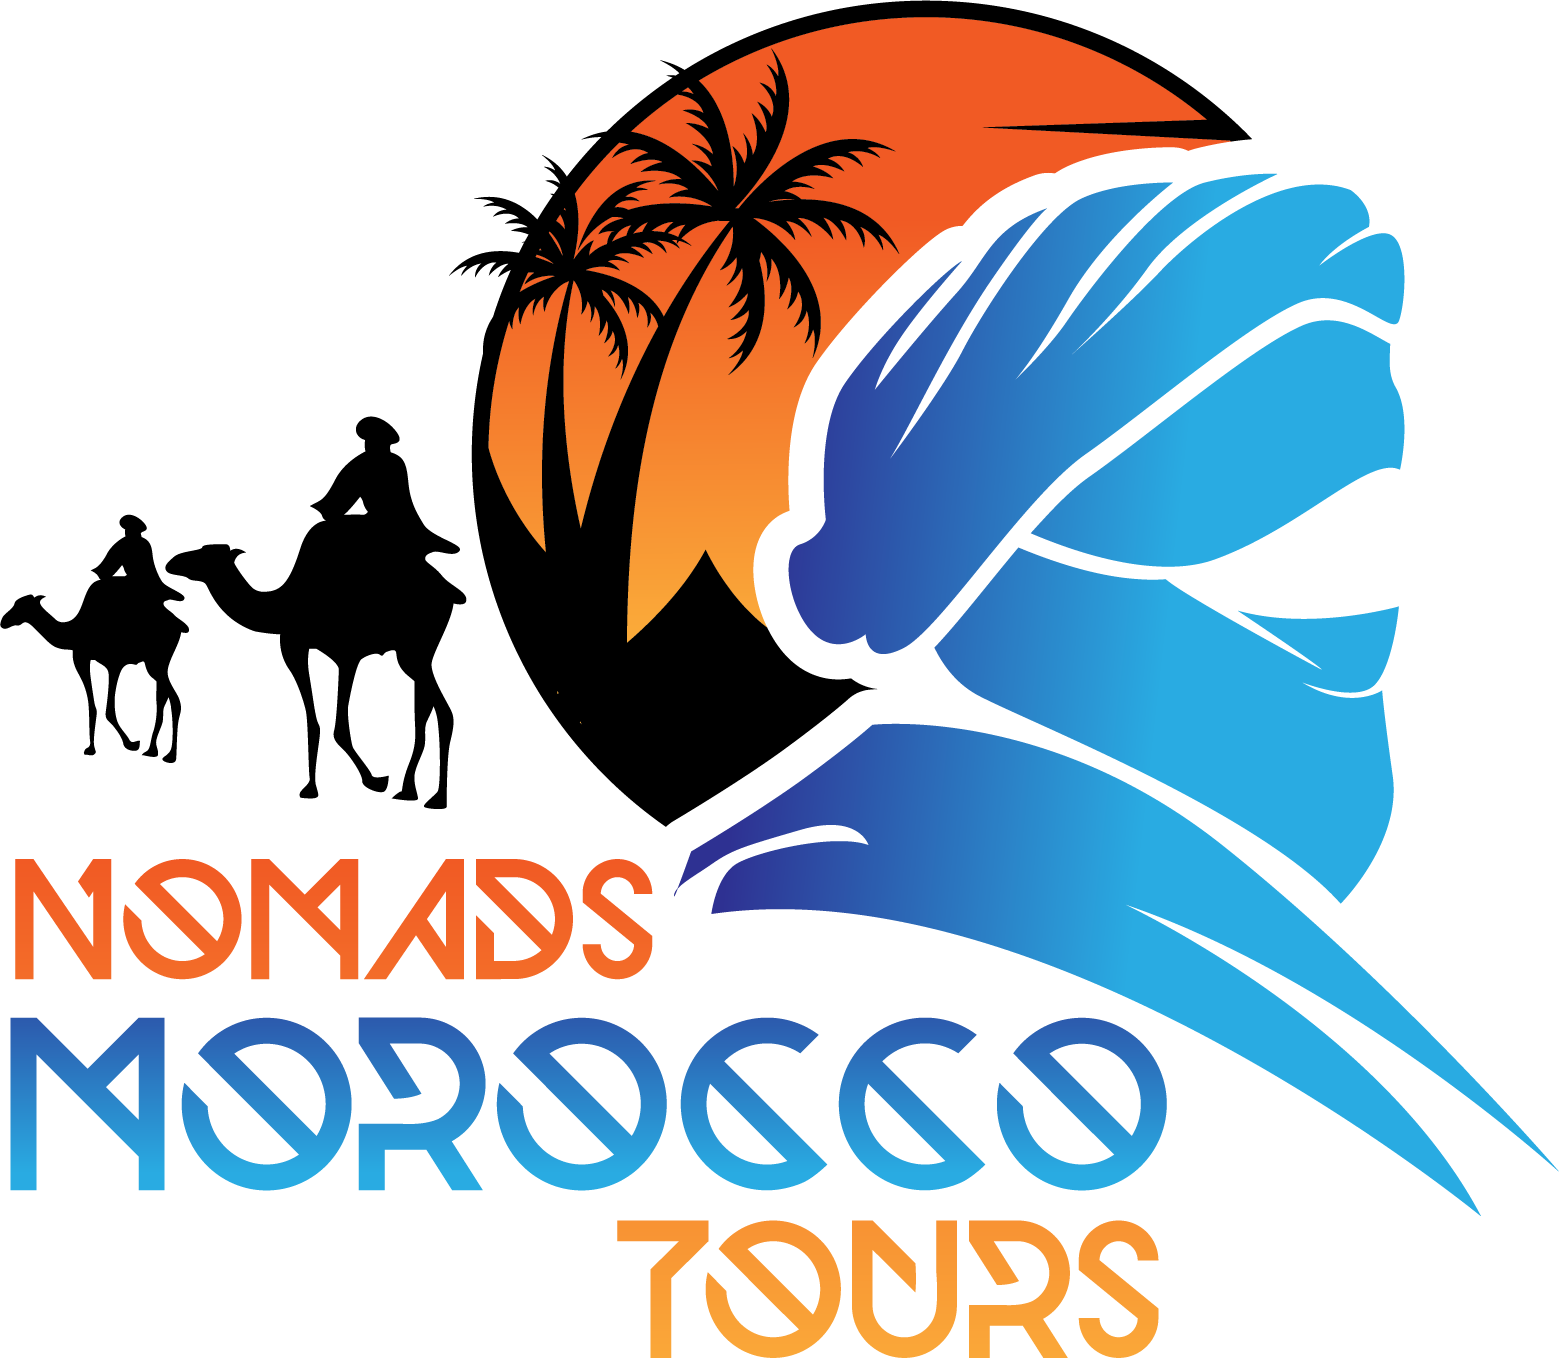 Nomads Morocco Tour to Offer Experiences of the Authenticity and Imperial Beauty of Morocco